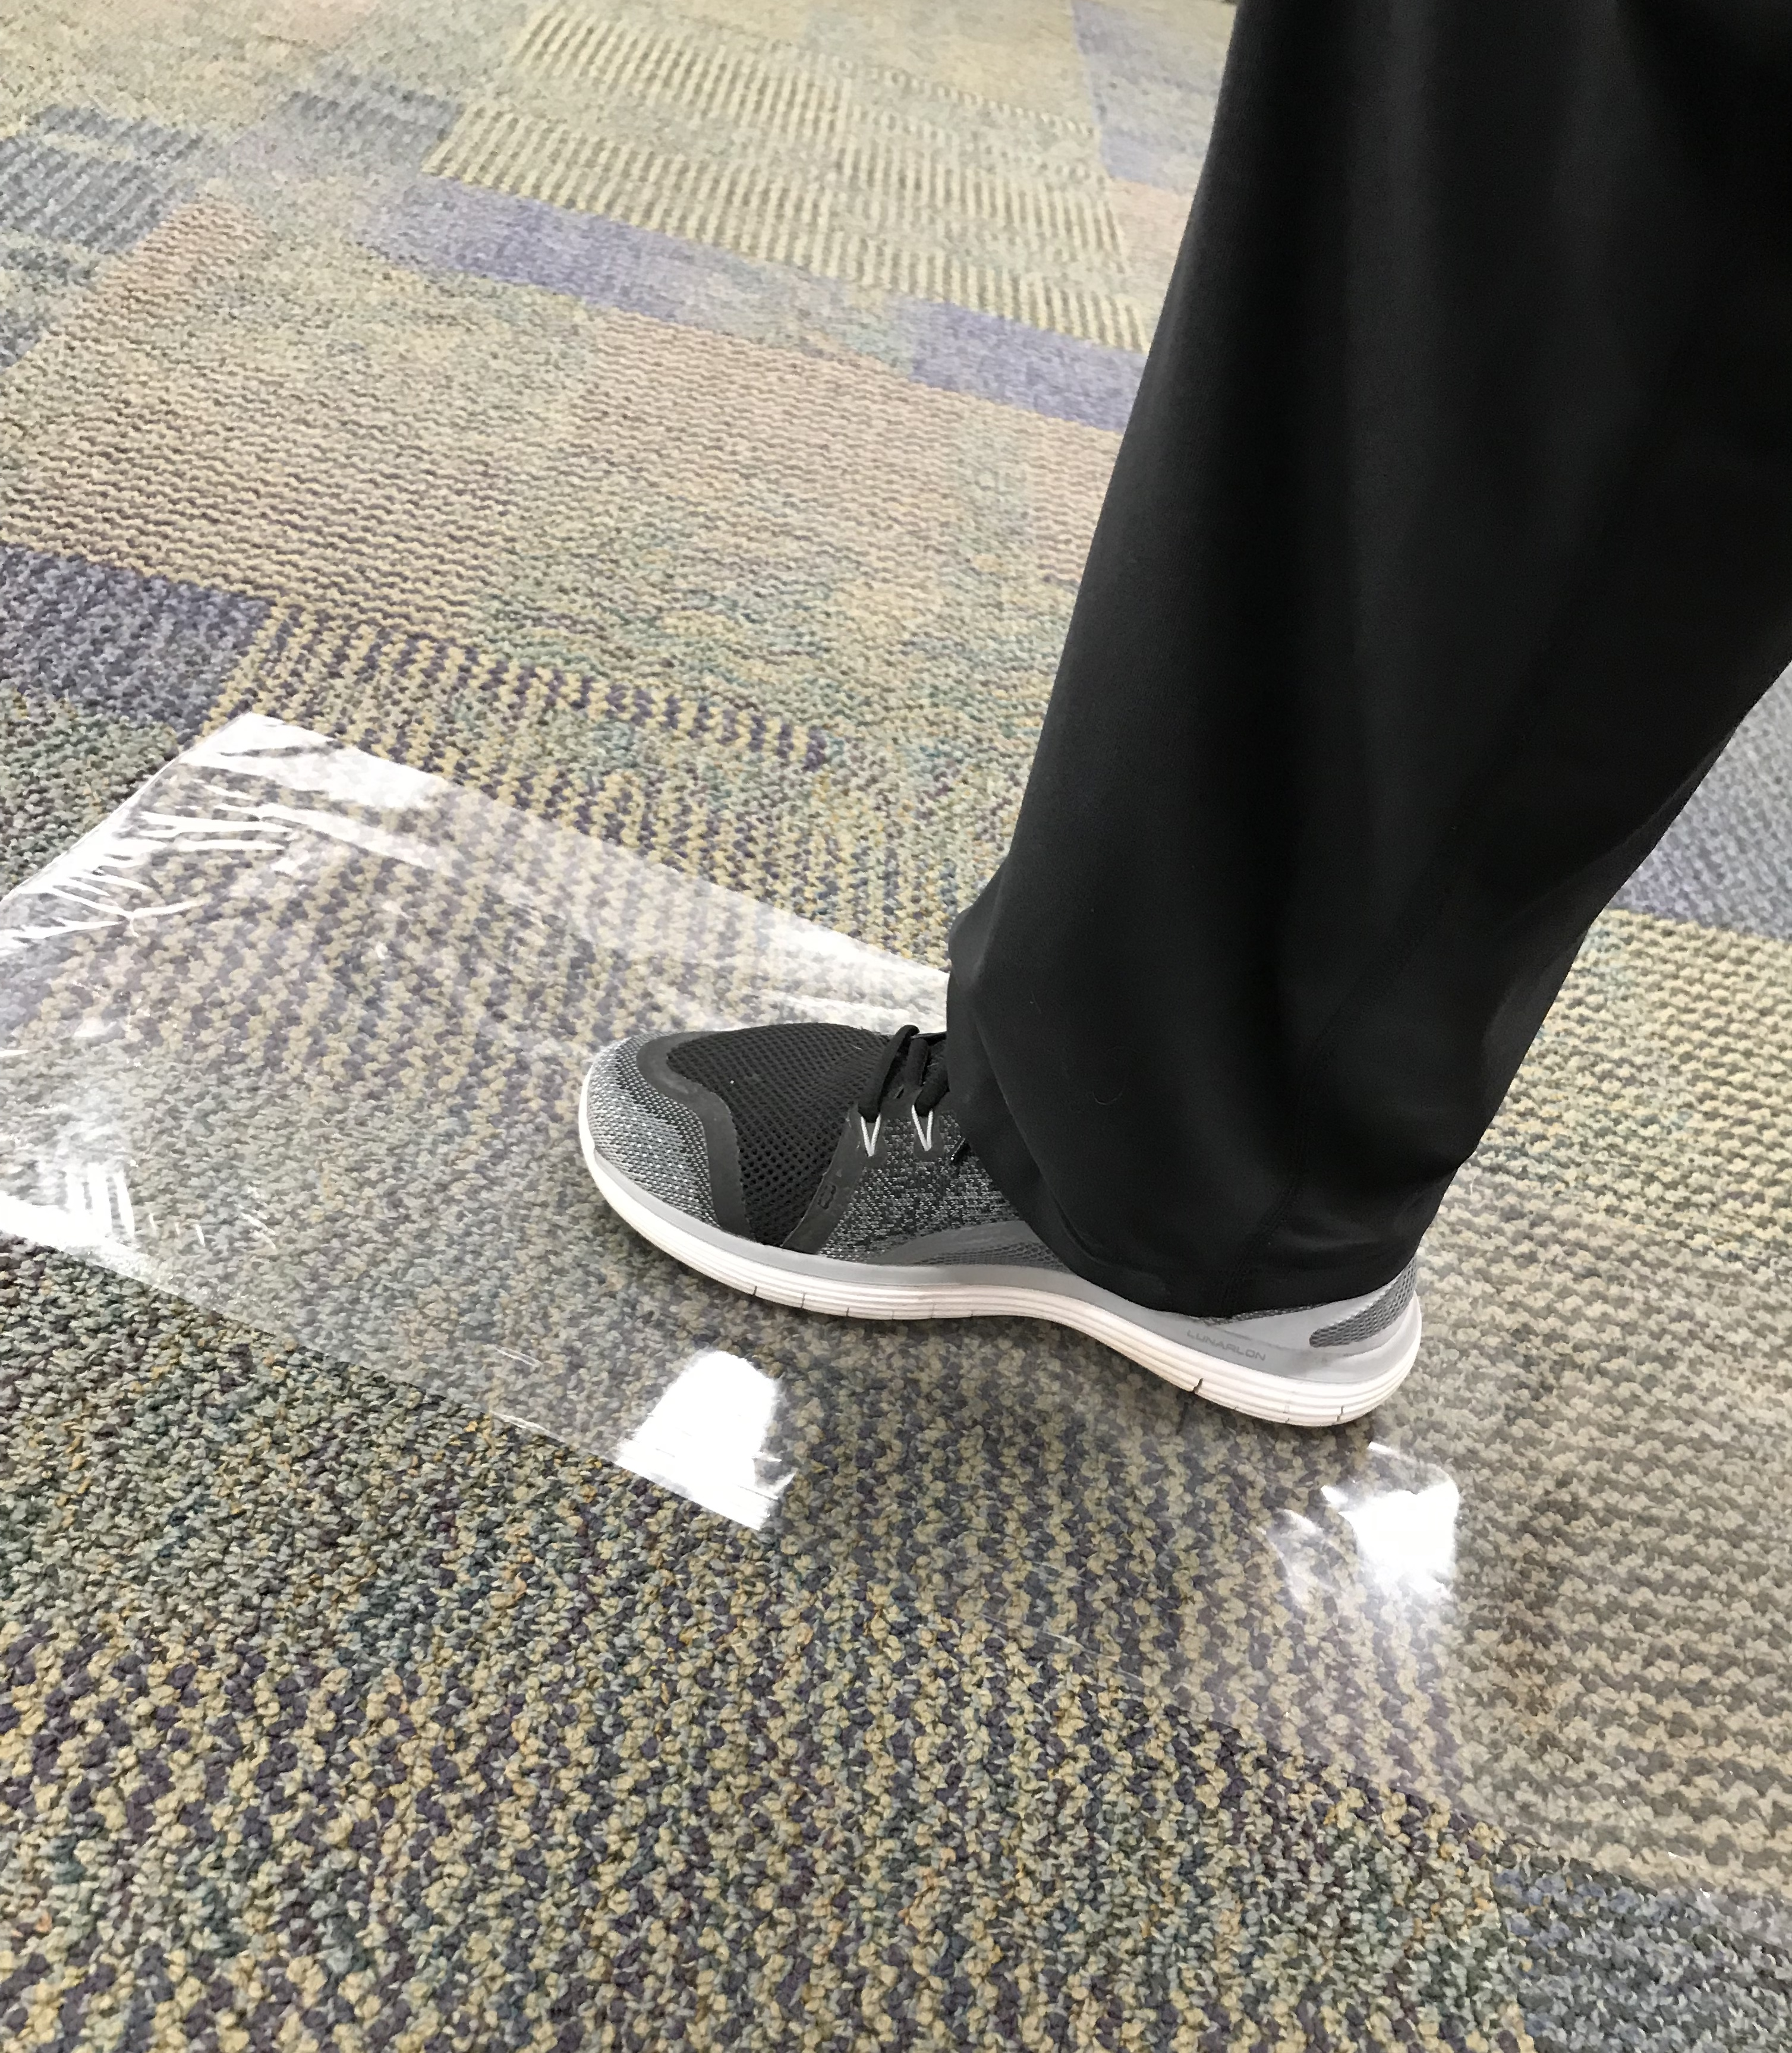 Stepping on plastic sheet placed on carpet